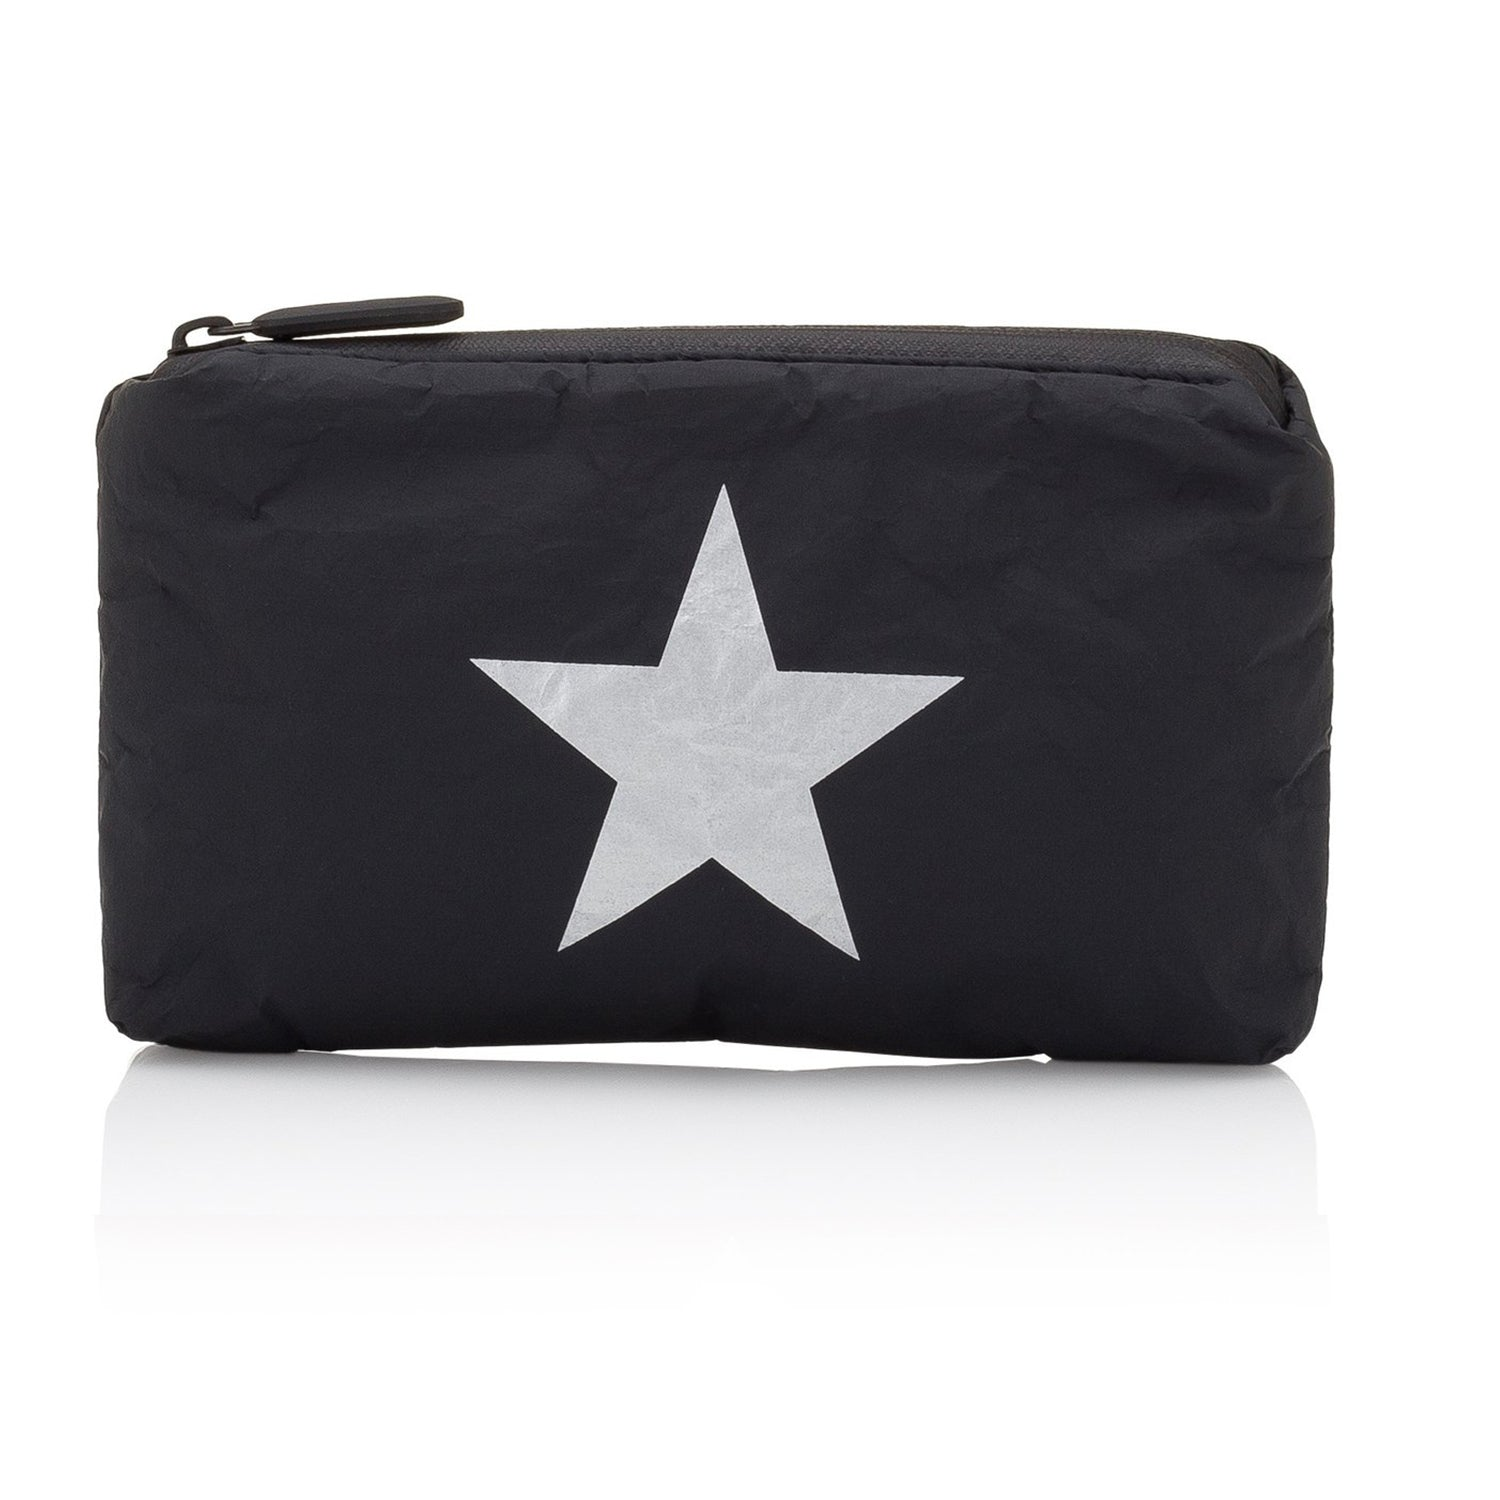 Mini Padded Pack - Black with Silver Star